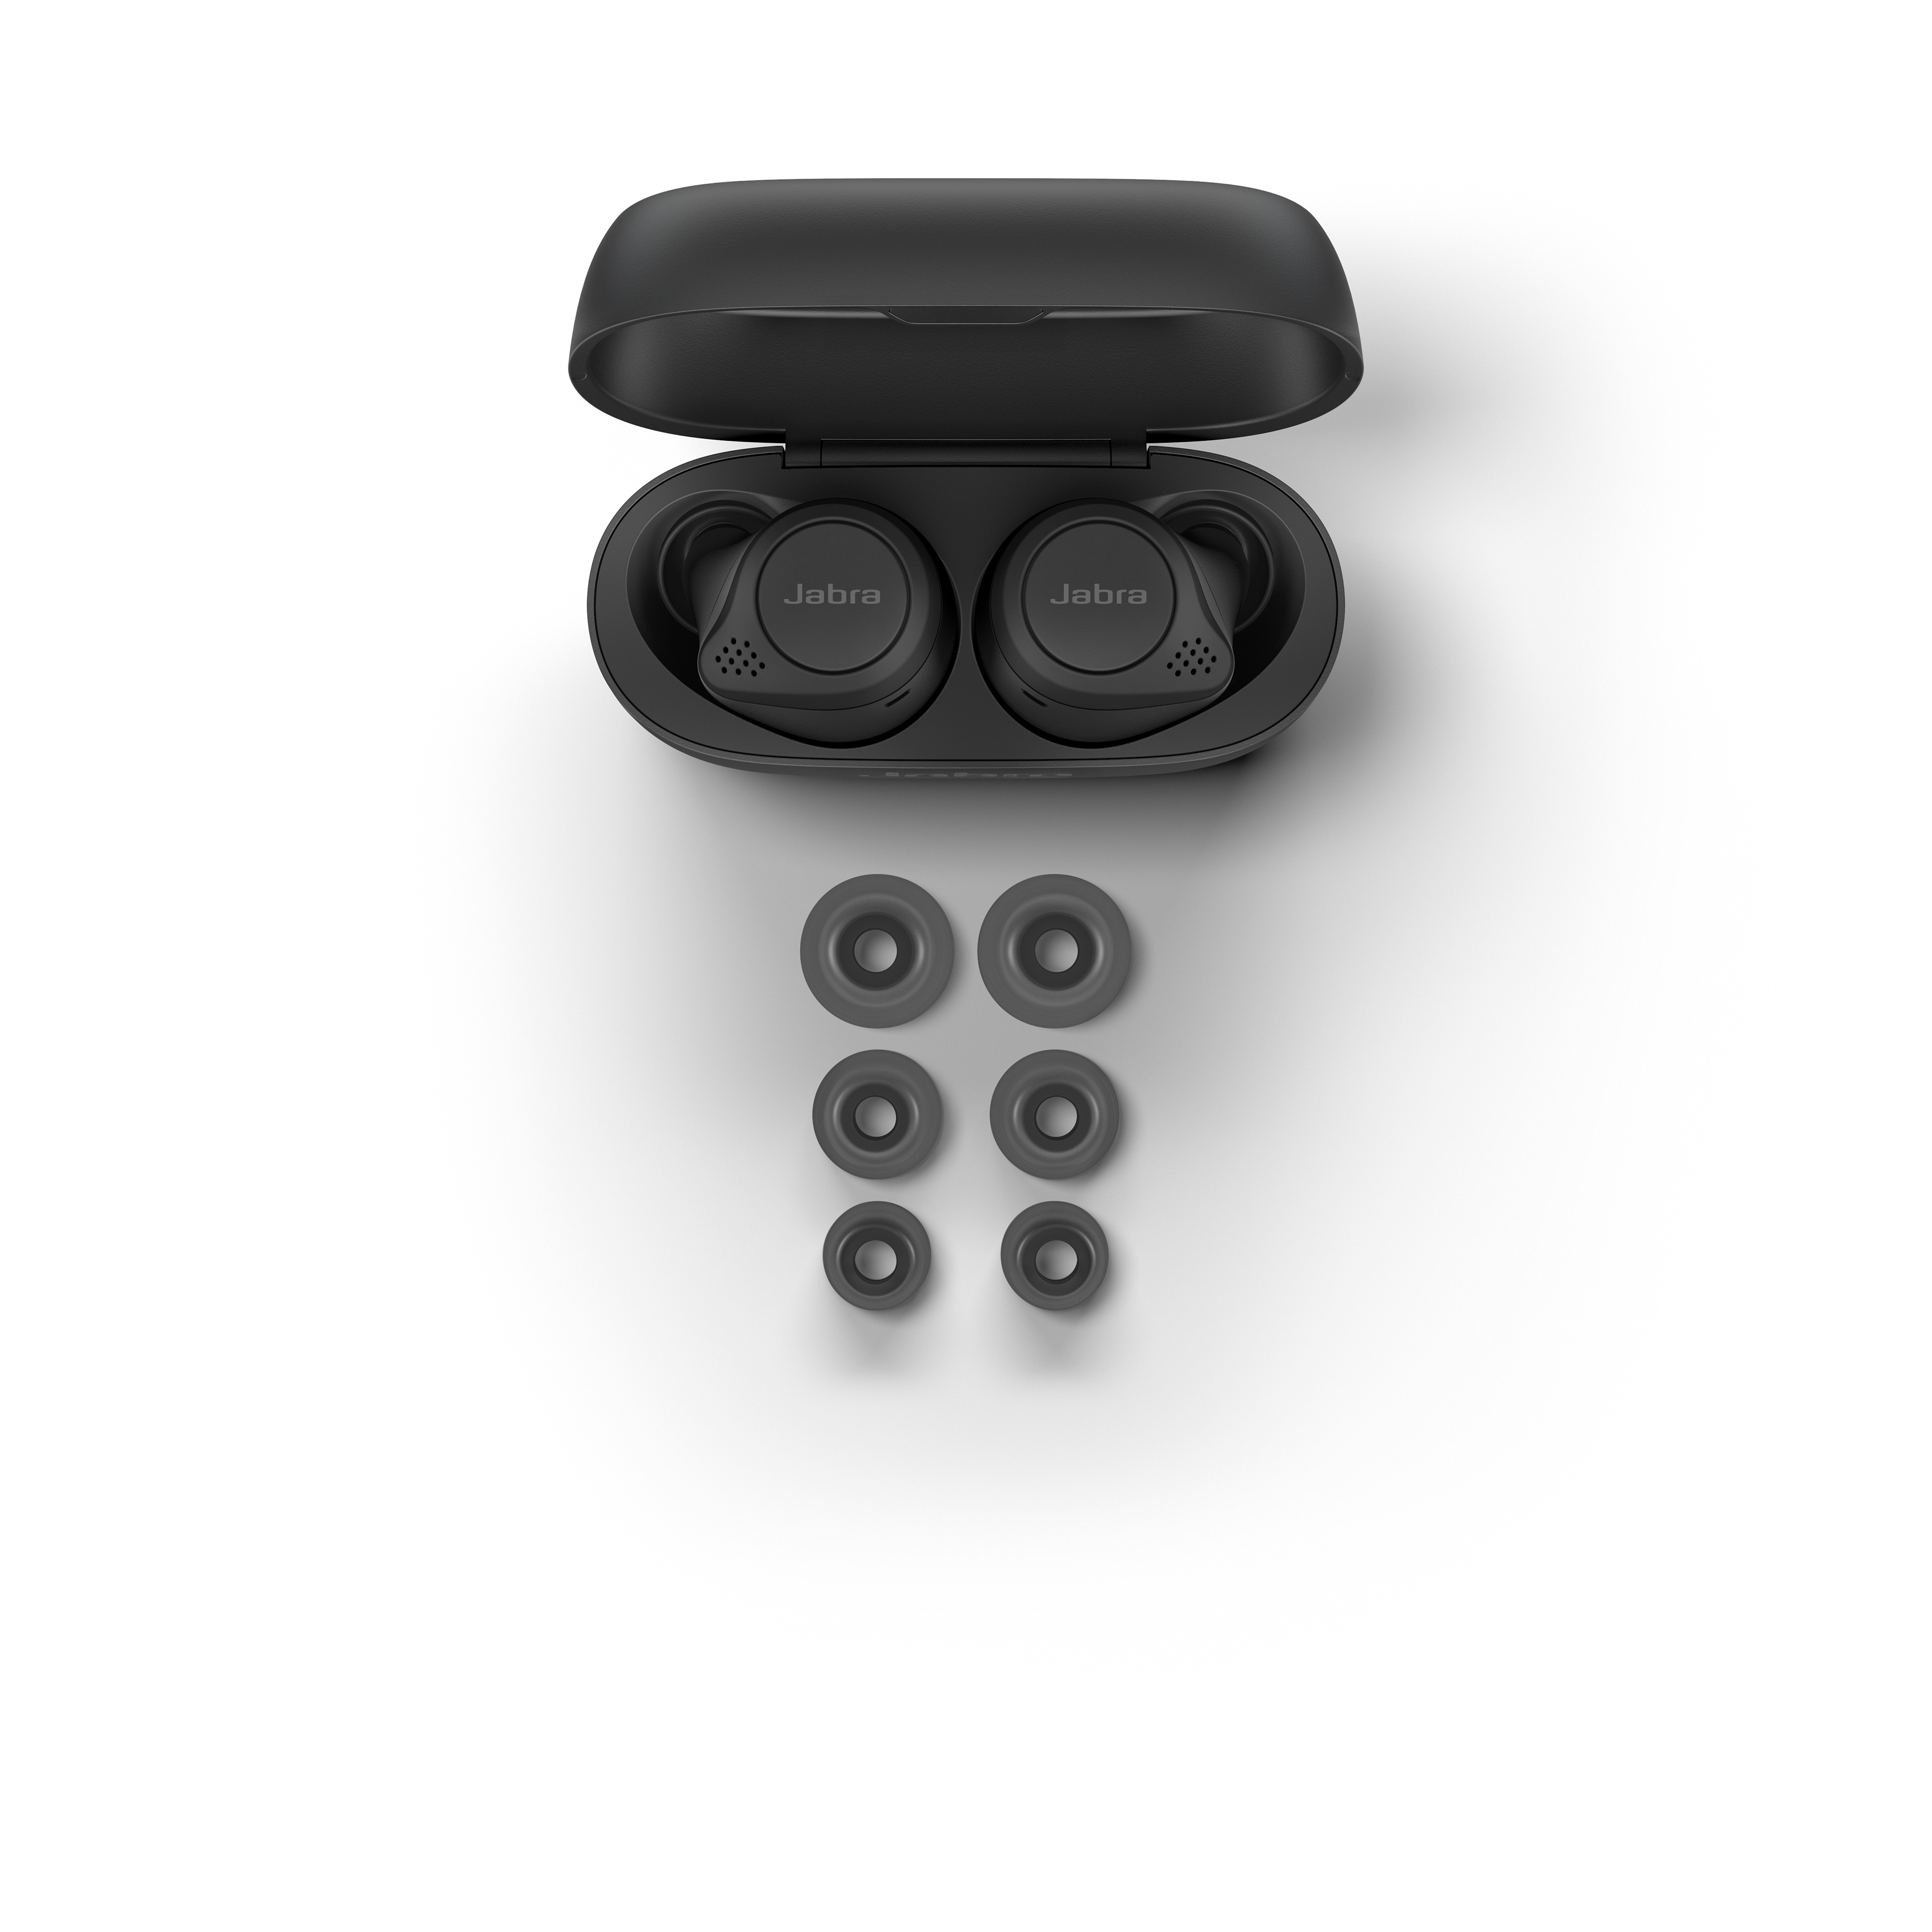 Jabra-Elite-75t-Voice-Assistant-True-Wireless-earbuds-Manufacturer-Refurbished thumbnail 13